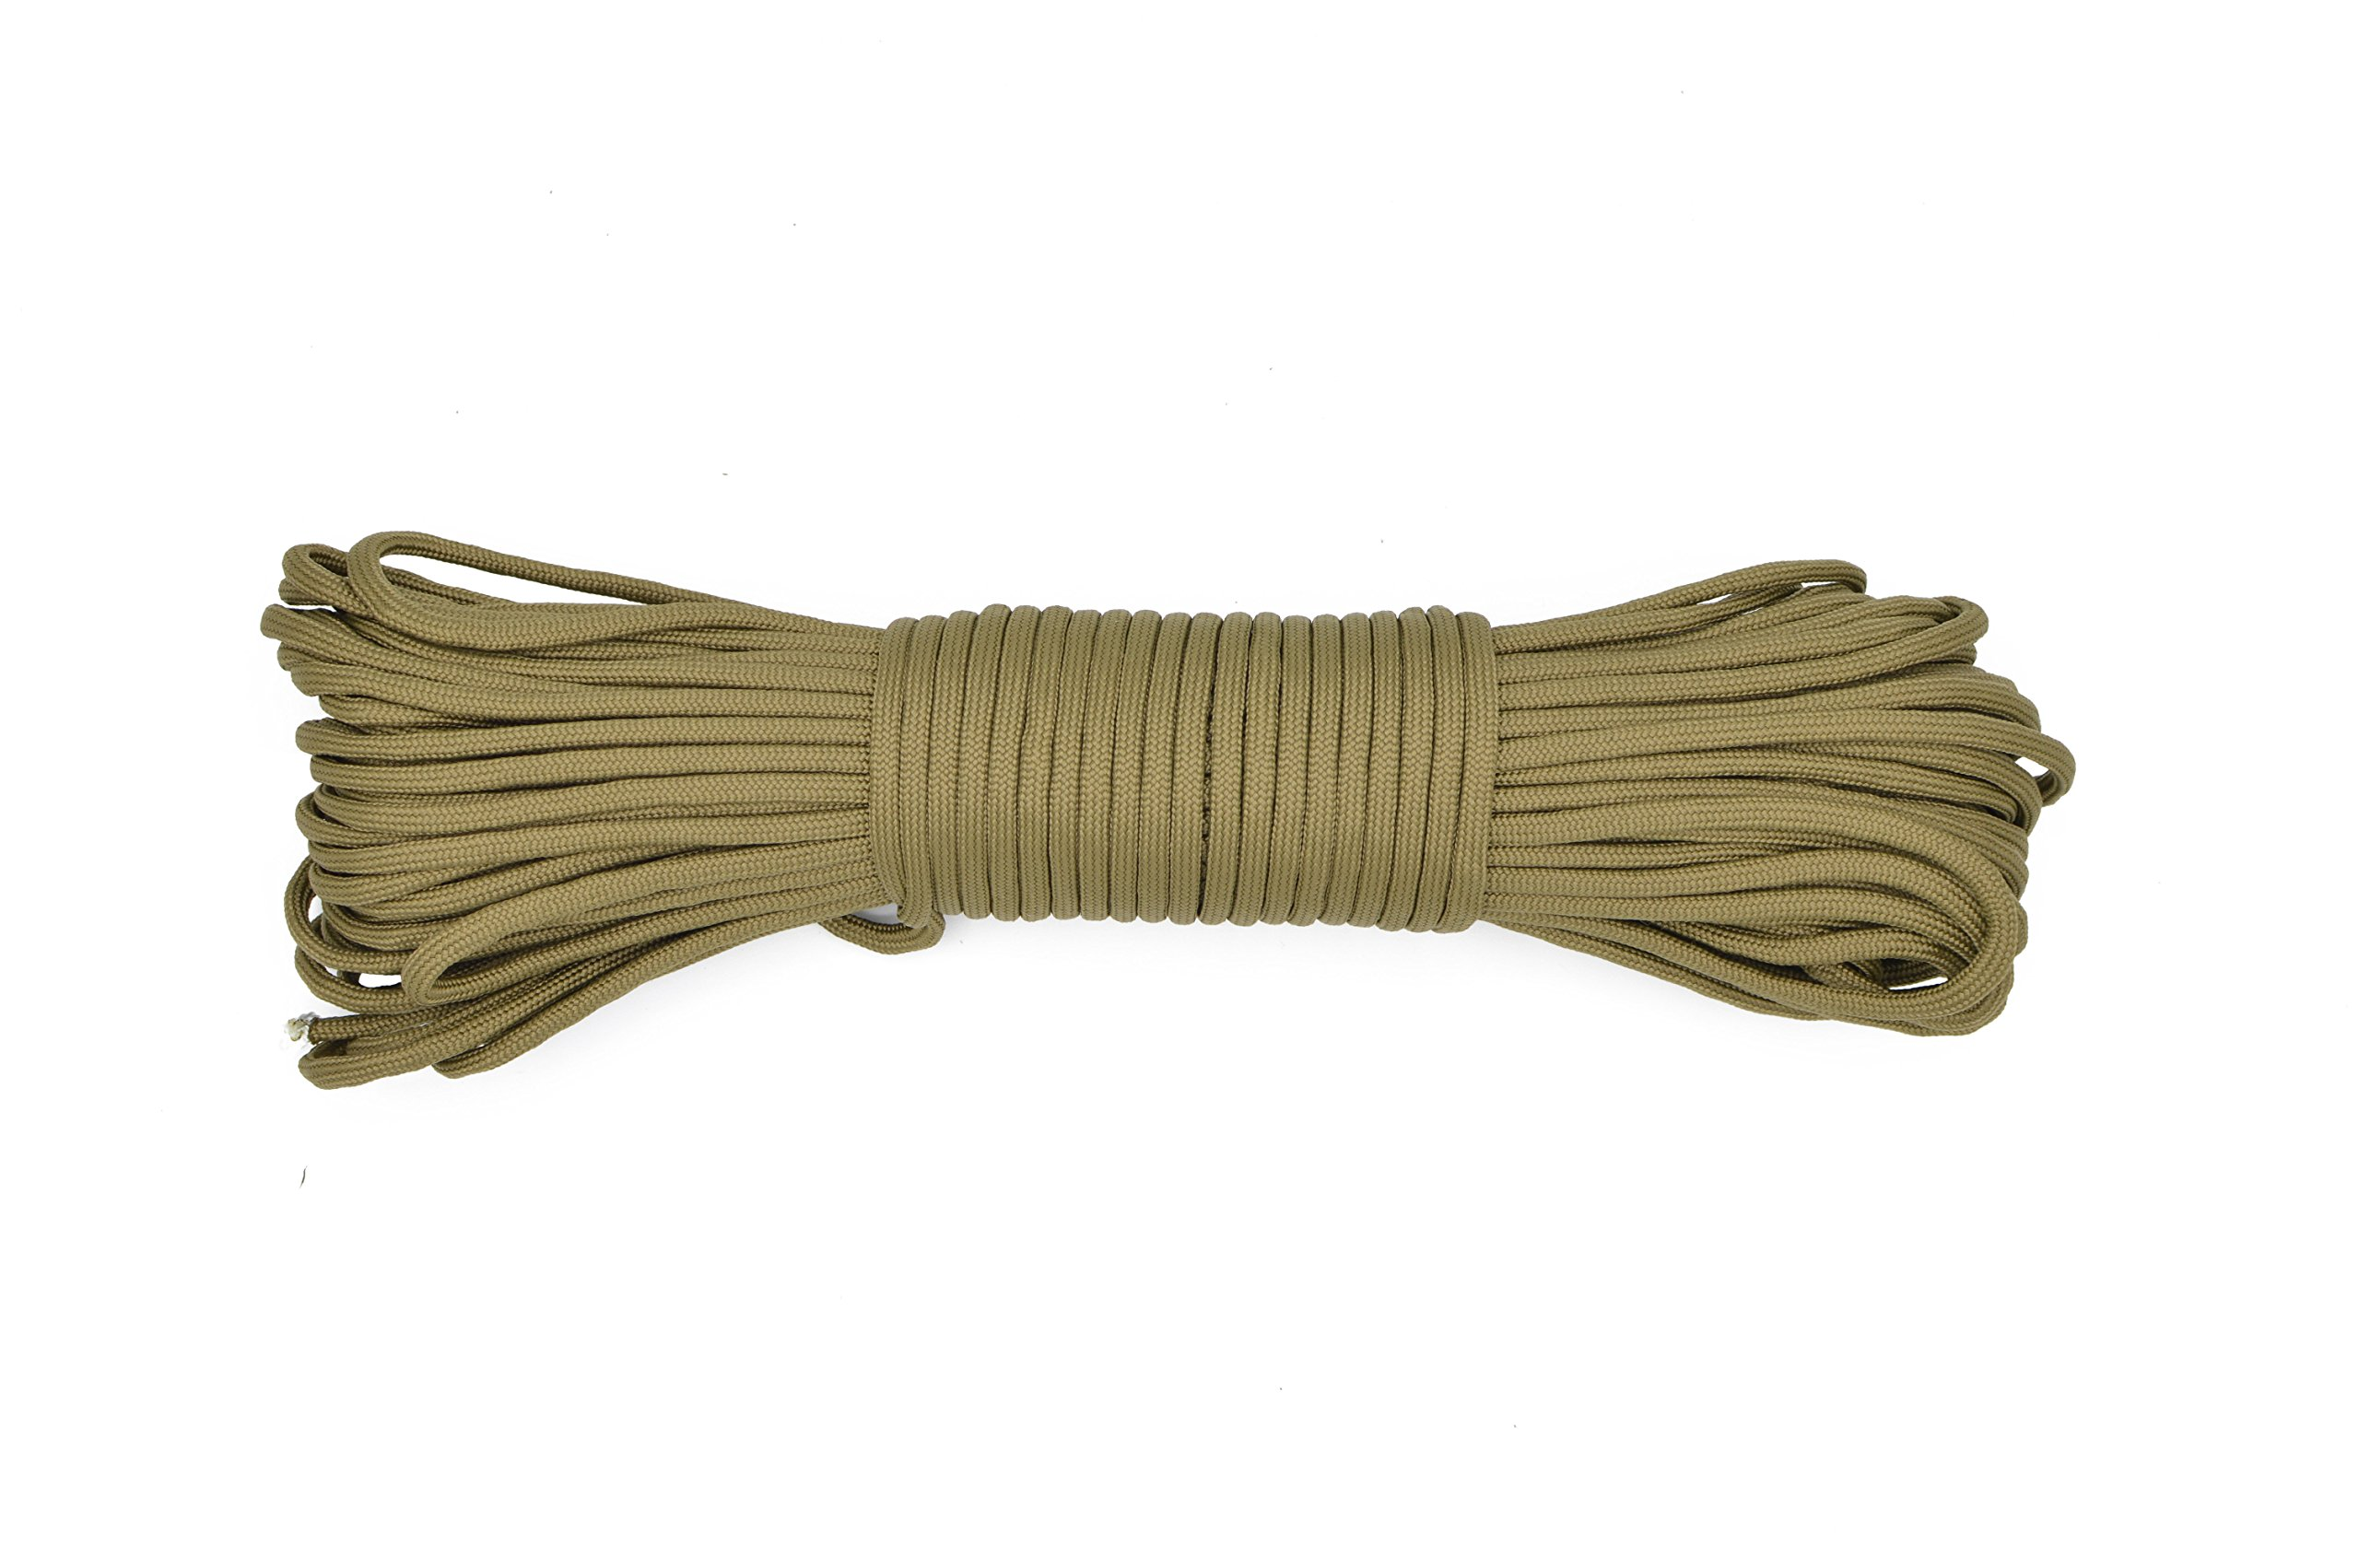 Paracord Rope 550 Type III Paracord - Parachute Cord - 550lb Tensile Strength - 100% Nylon - Made In The USA (Coyote Brown, 50 Feet)